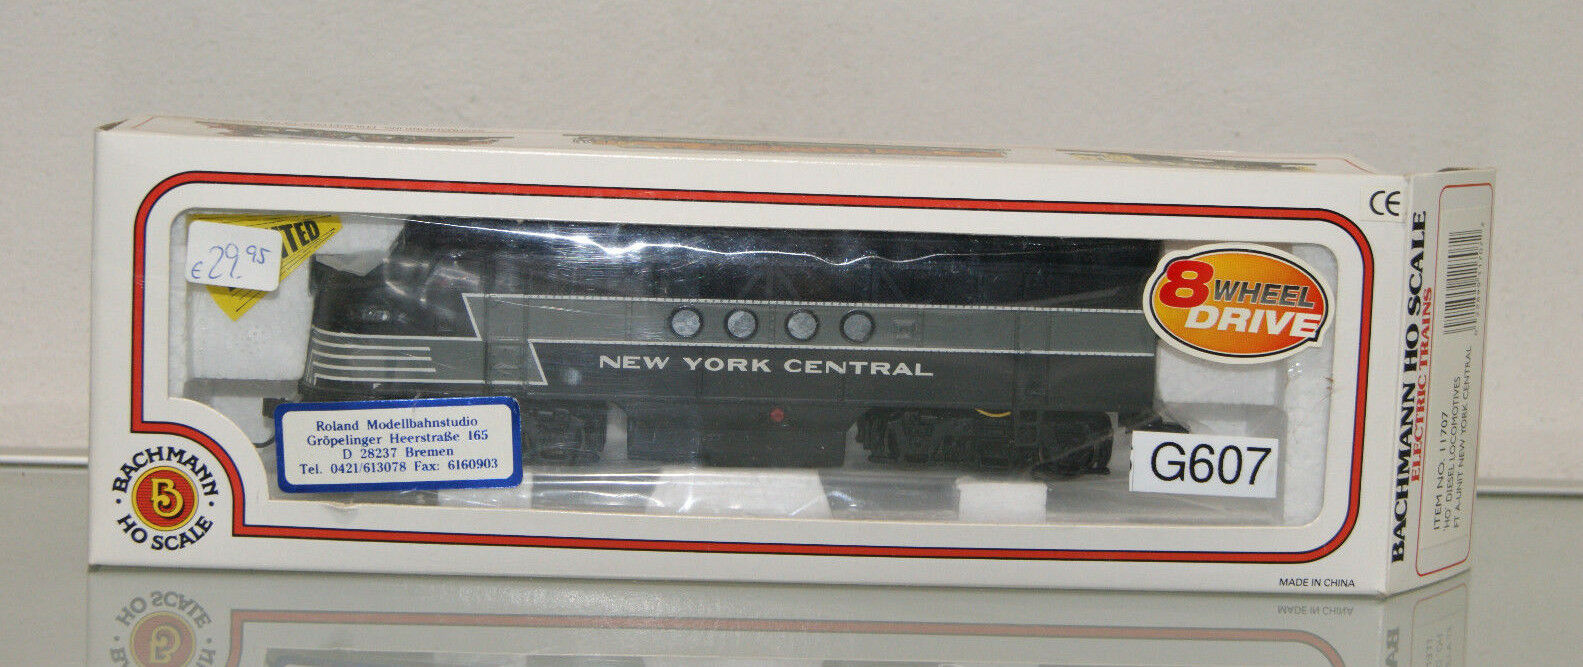 Bachmann Nuovo York Central FT-A DIESEL USA ho 11707  g607